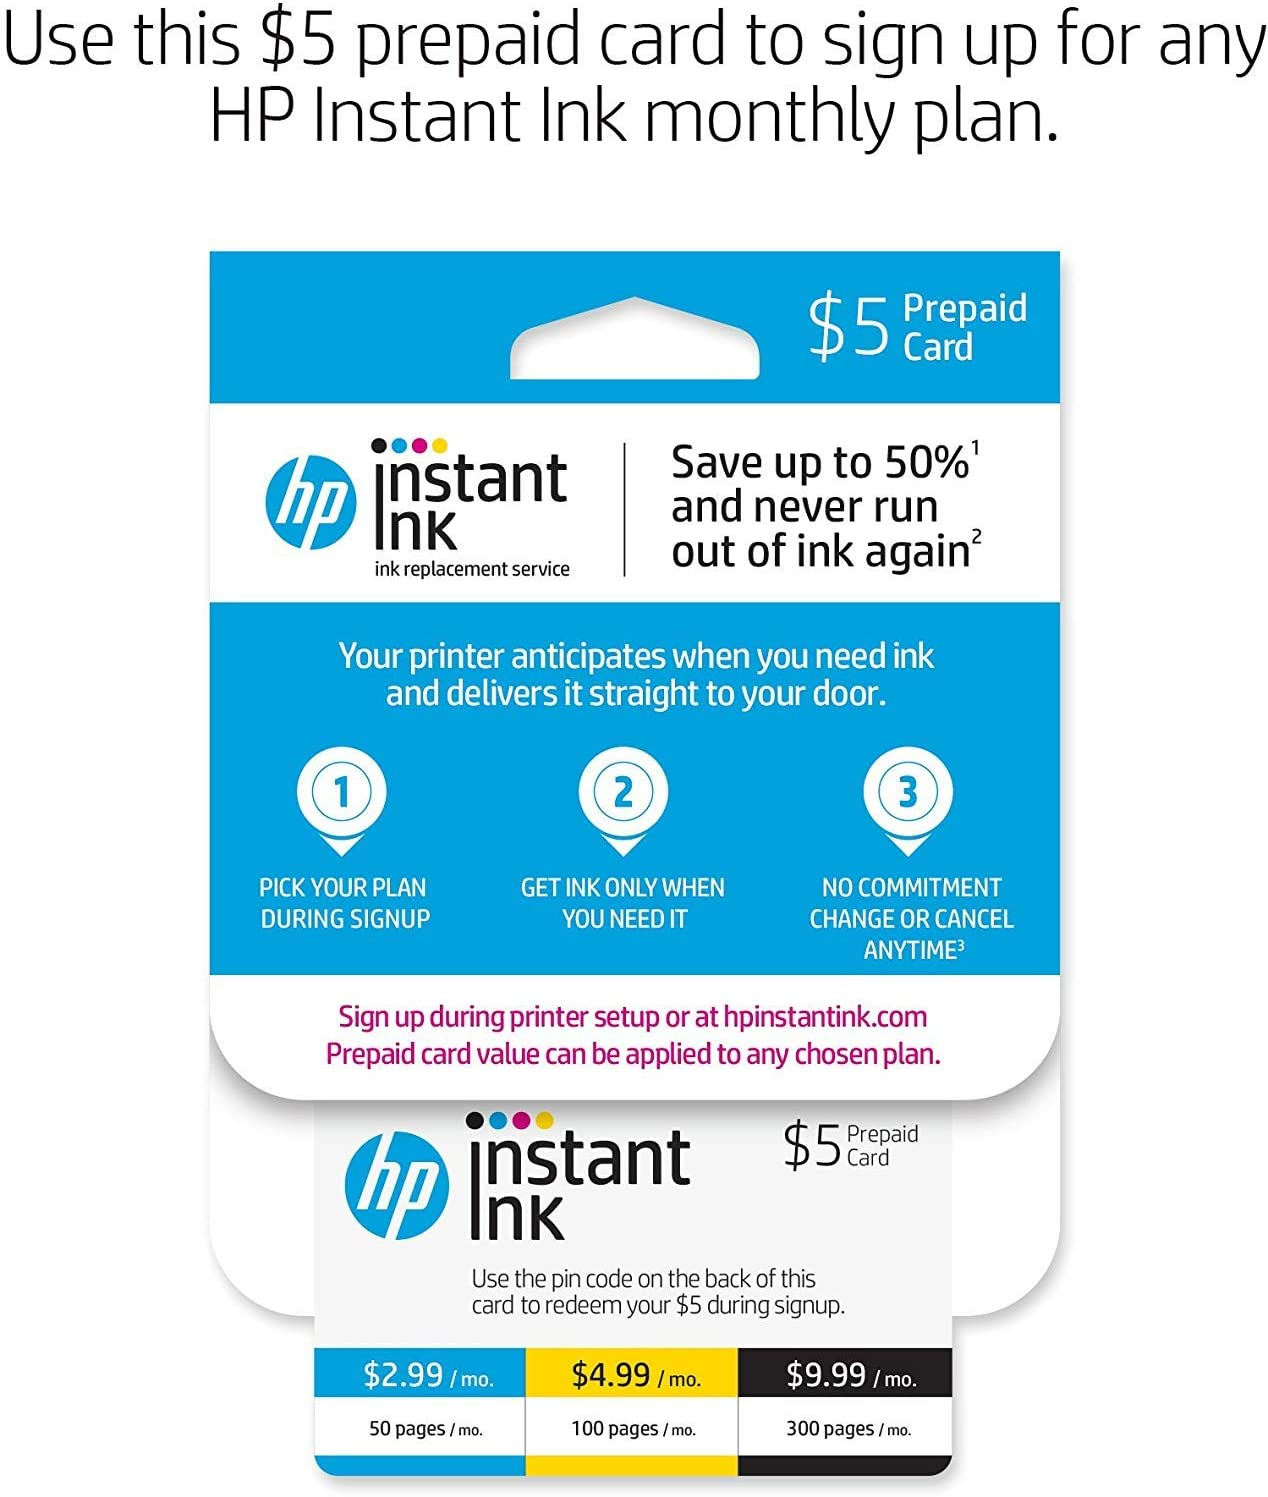 HP OfficeJet Pro 6978 All-in-One Wireless Printer with Mobile Printing (T0F29A) and Instant Ink Prepaid Card for 50 100 300 Page per Month Plans ...